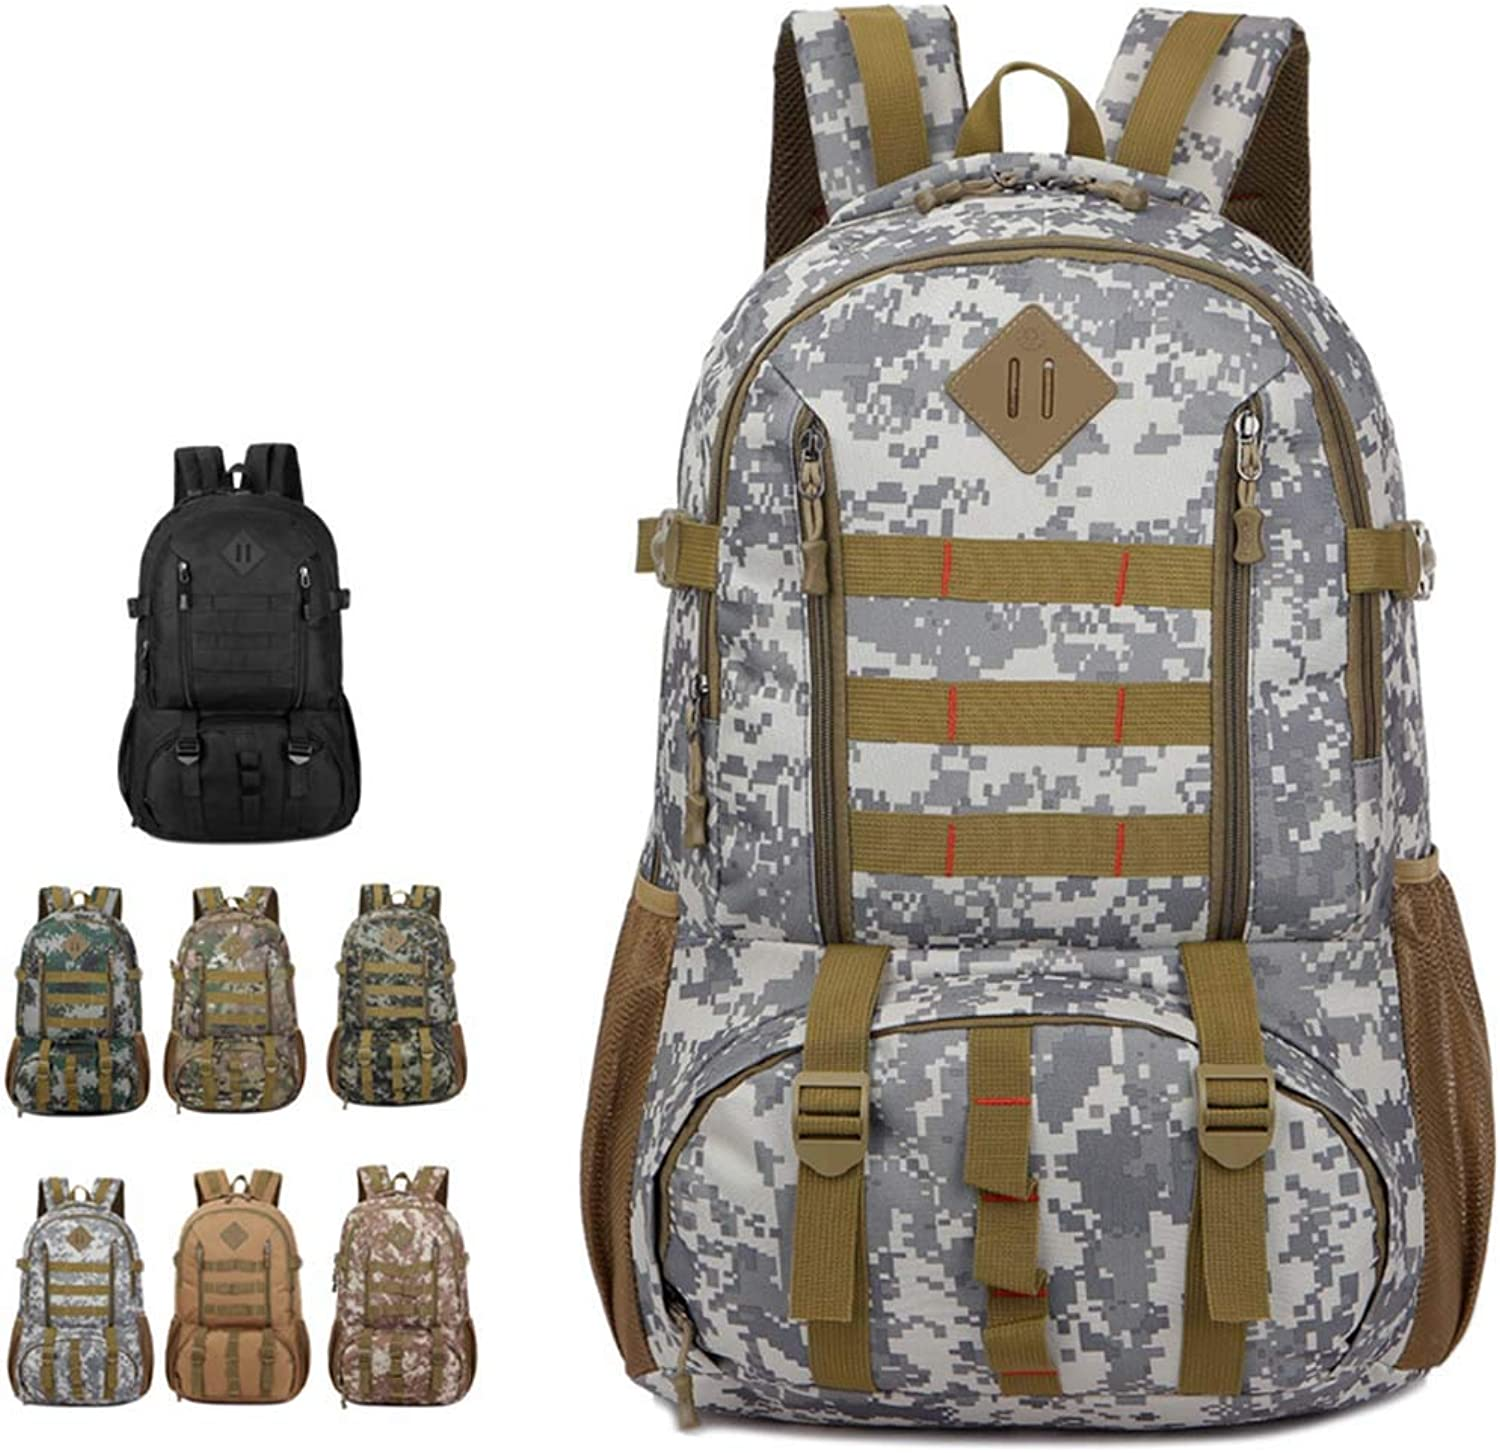 Camouflage 50L Outdoor Backpack Adult Multifunction Mountaineering Bag for Camping Hunting Trekking Travel